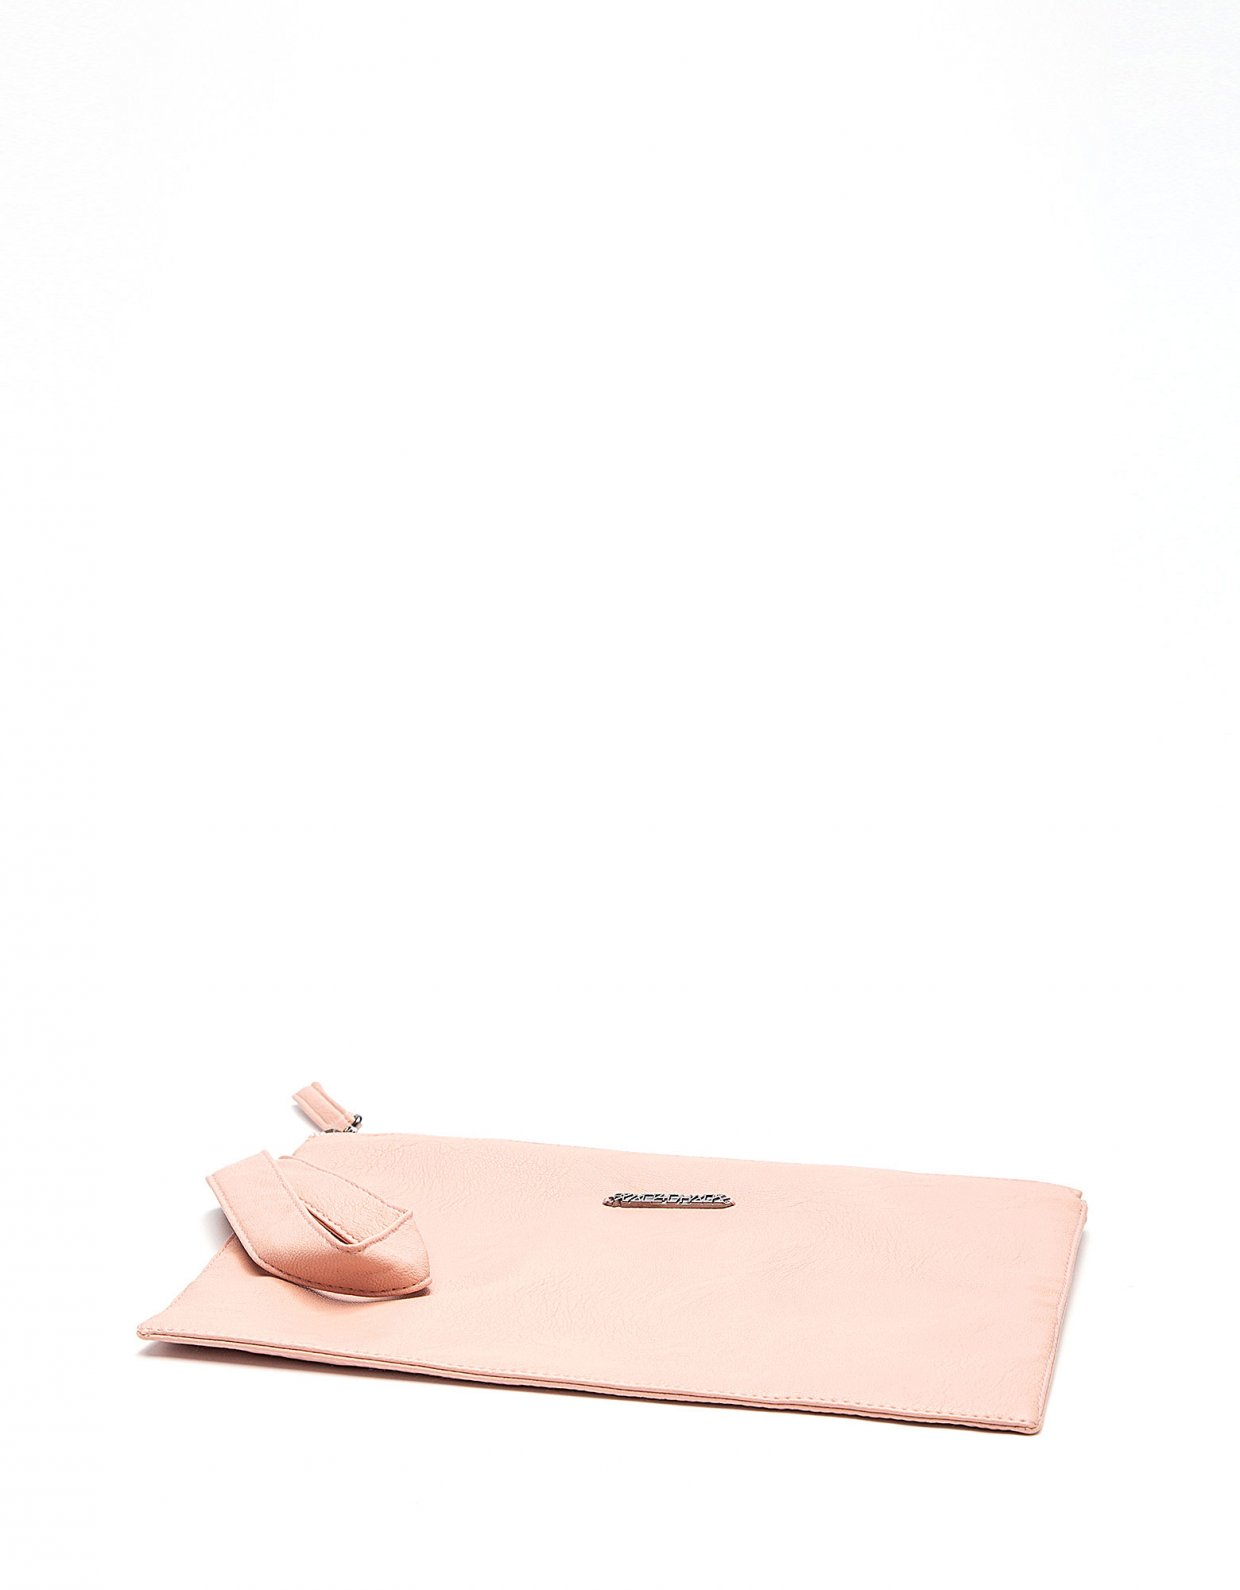 Peace & Chaos Cute eco leather clutch bag dusty pink